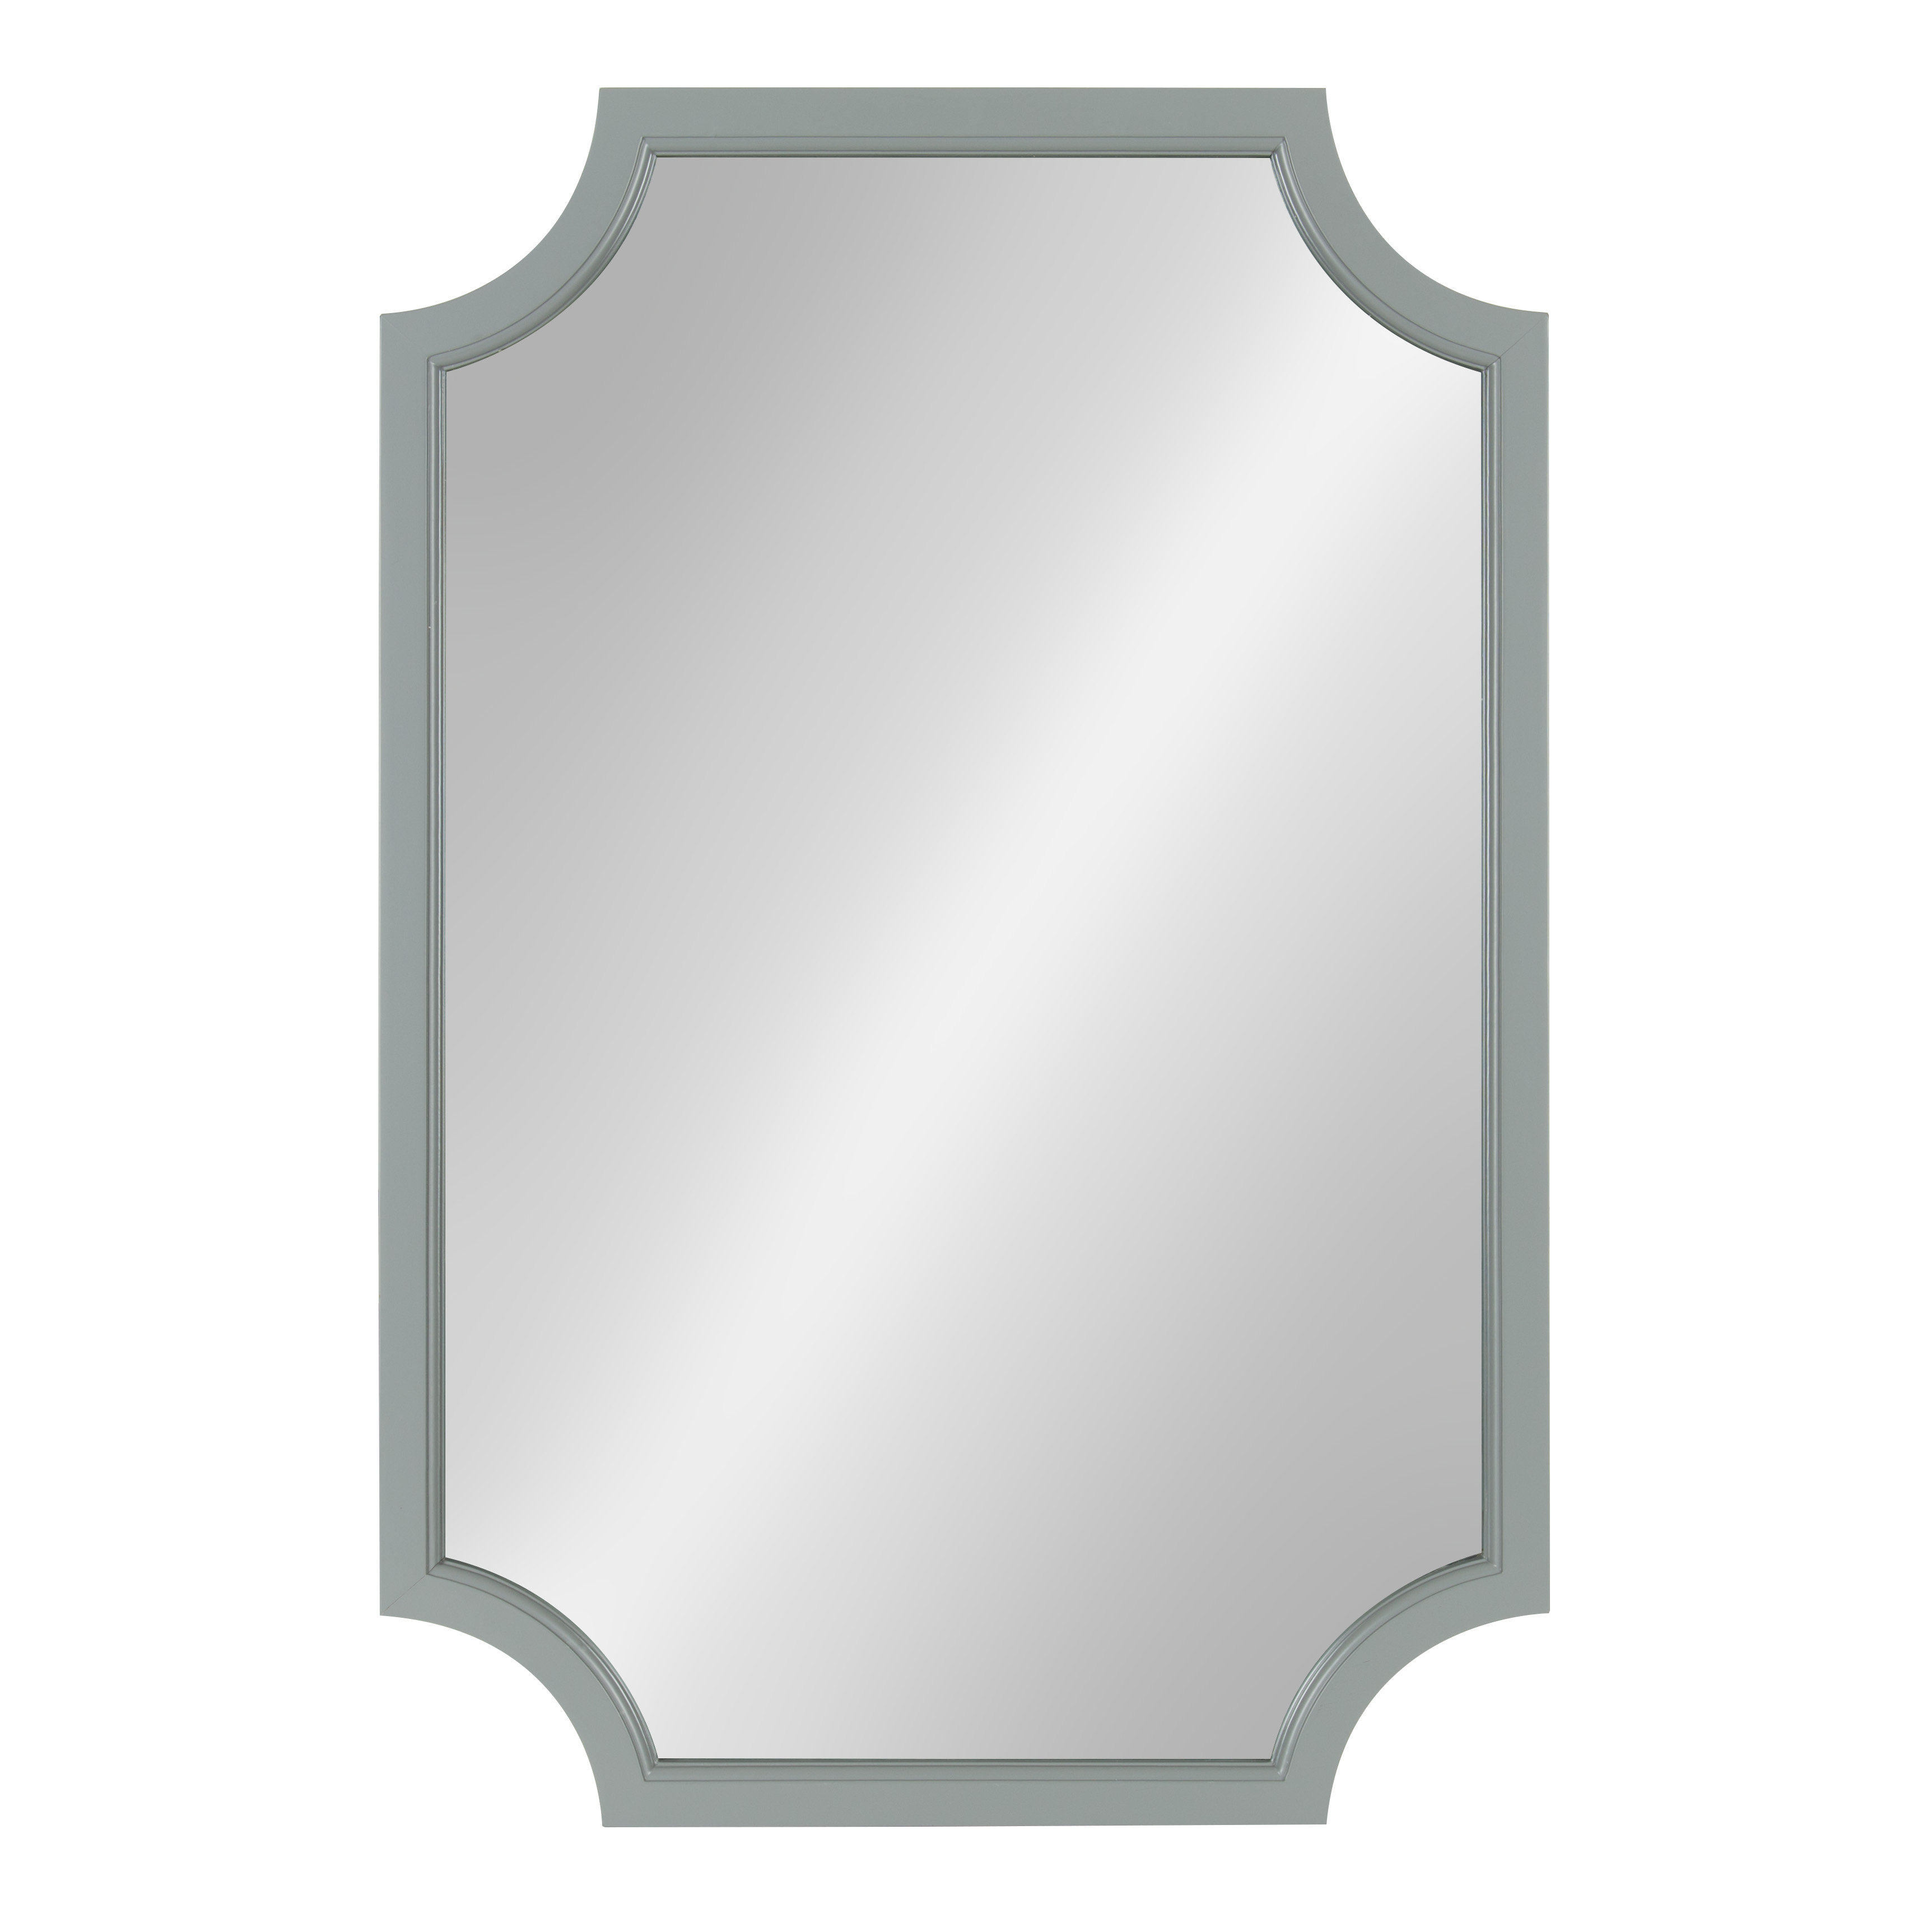 Surbit Wood Framed Accent Mirror Intended For Egor Accent Mirrors (Image 17 of 20)